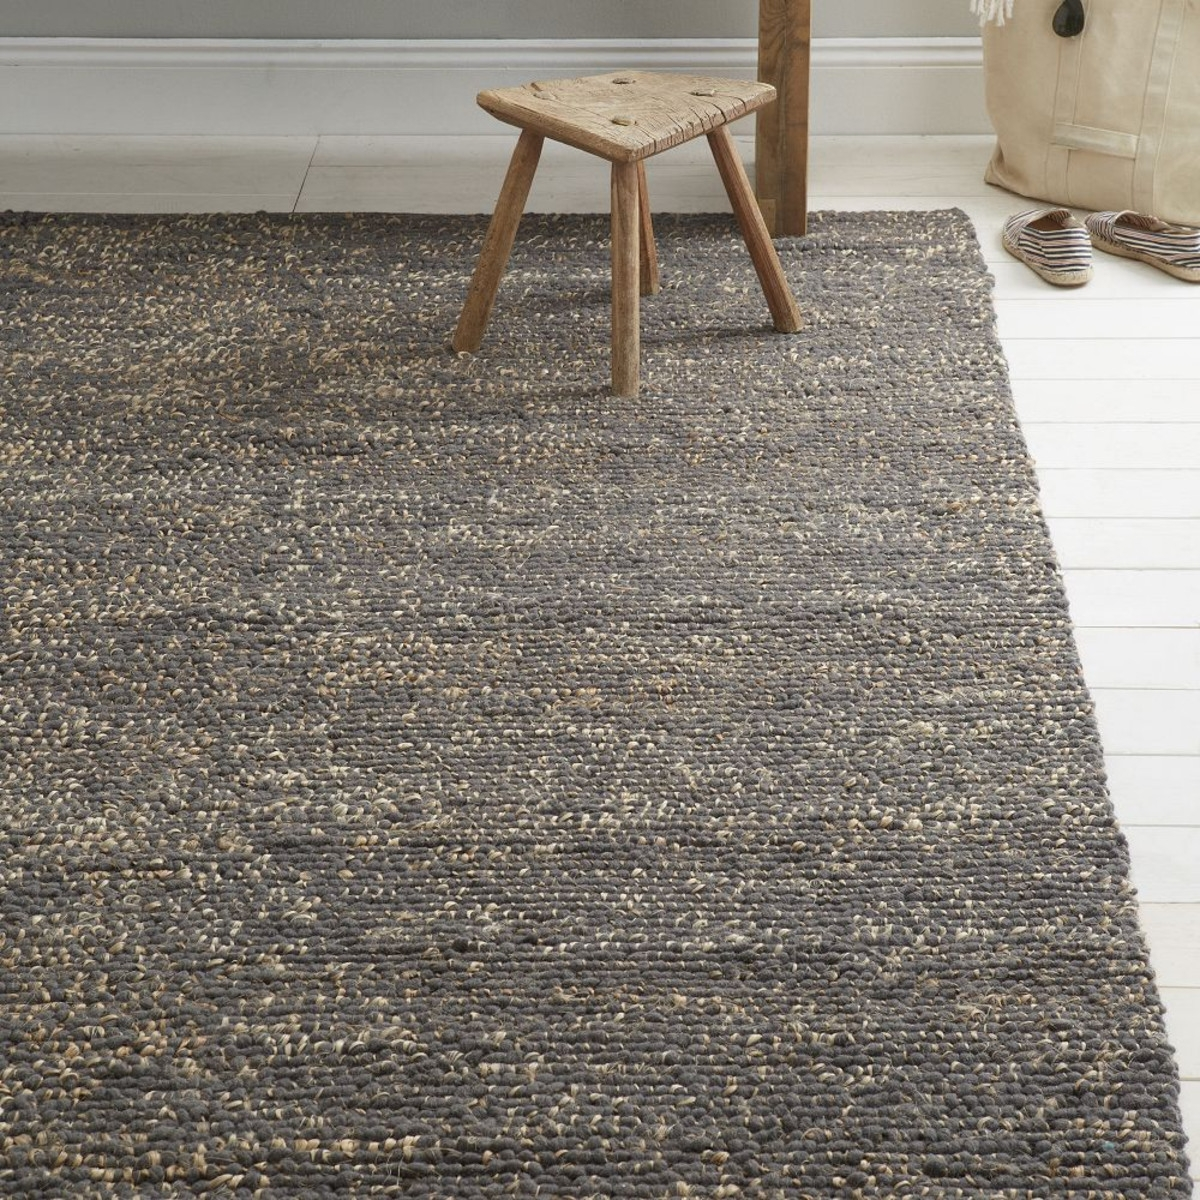 West Elm Pebble Rug Simplistic Interior And Mini Jute Wool Tikspor Intended For Jute And Wool Area Rugs (#6 of 7)